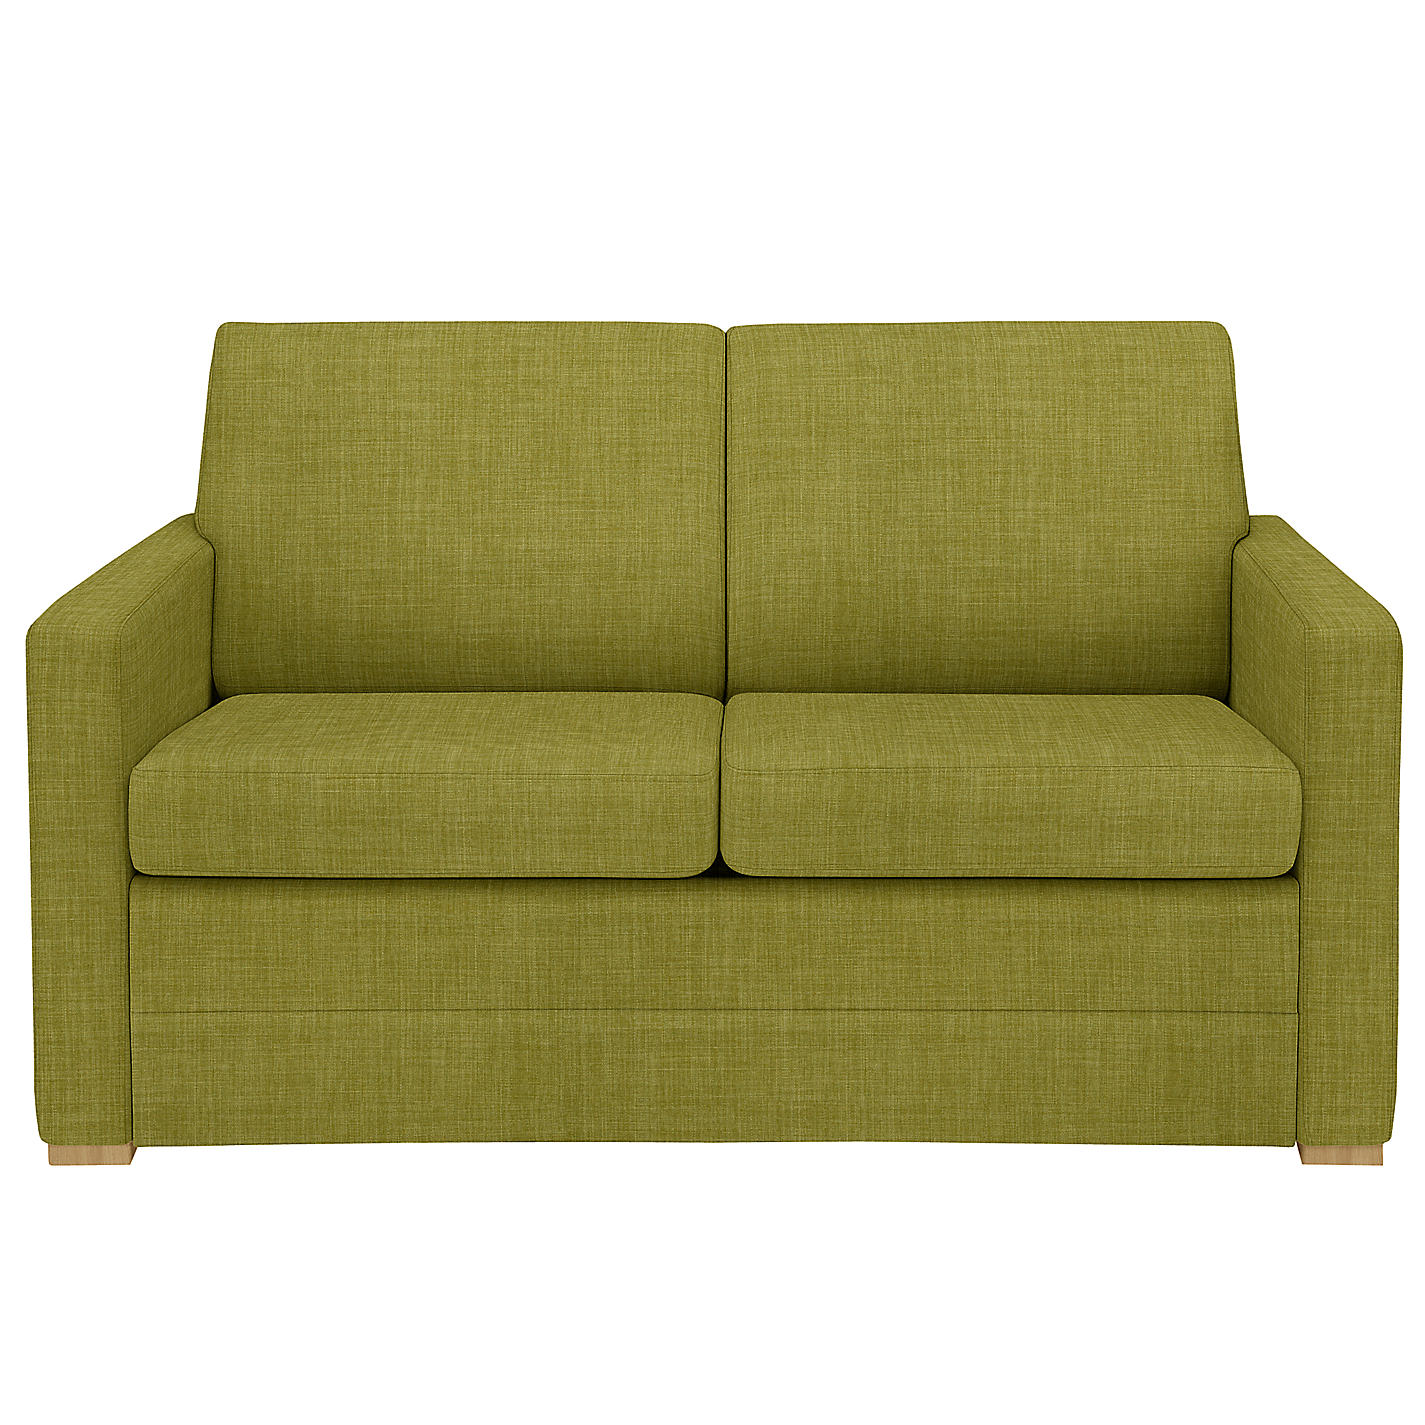 Single sofa beds john lewis refil sofa for Sofa bed john lewis